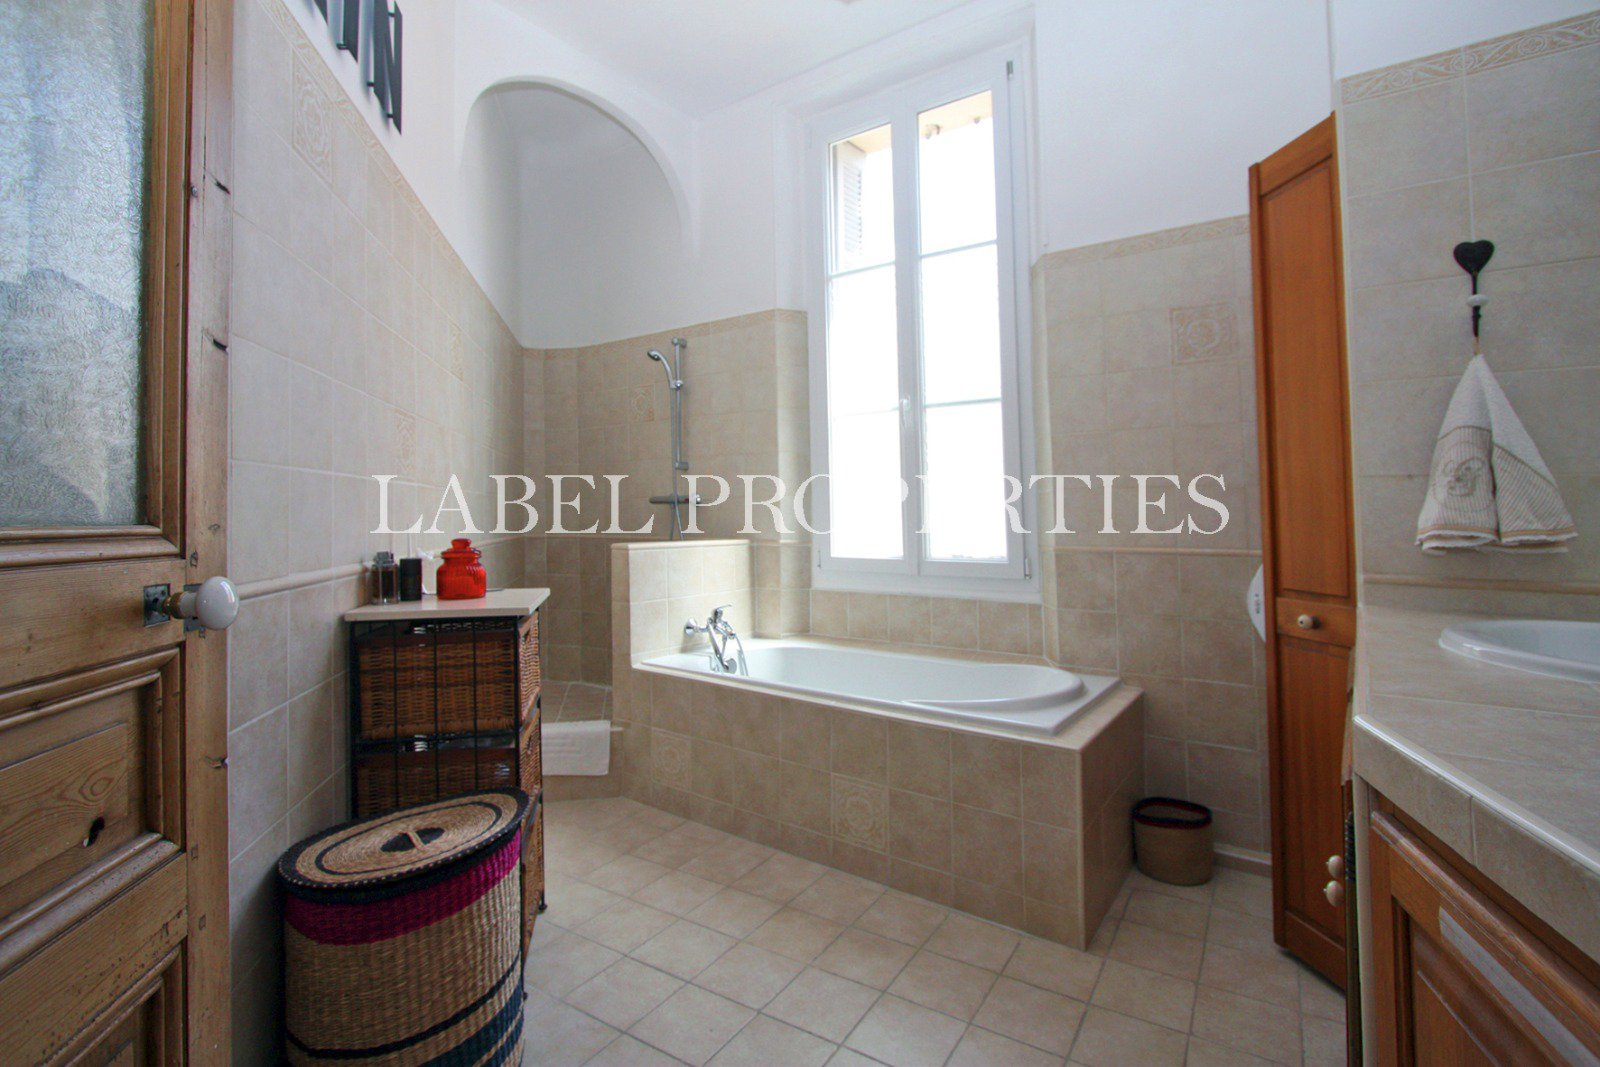 150 meters from the center - Comfortable 3 rooms - lots of cachet